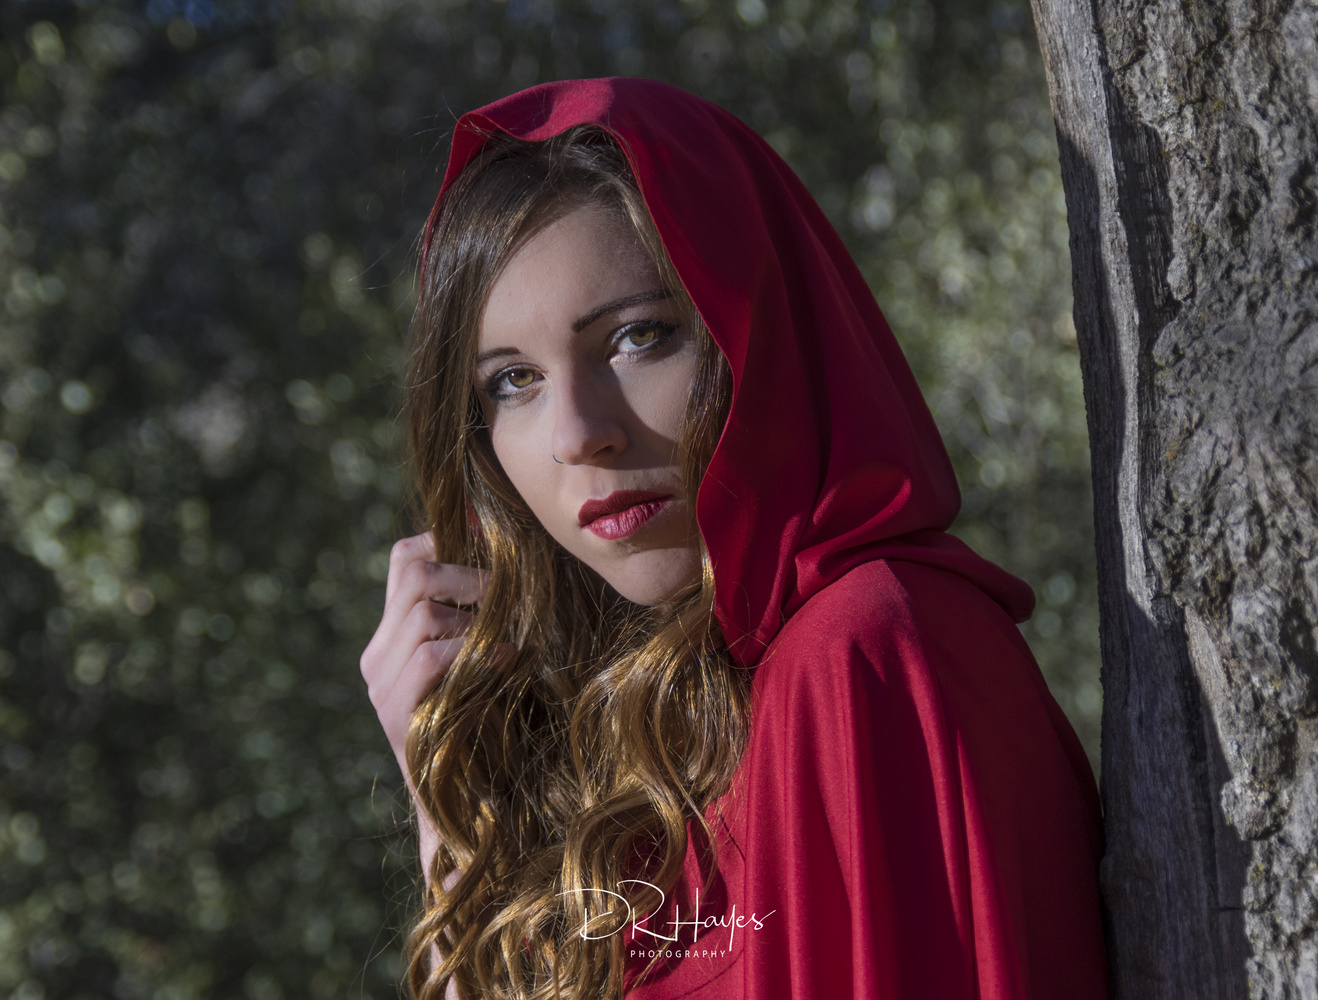 Red Riding Hood 2 by Daniel Hayes